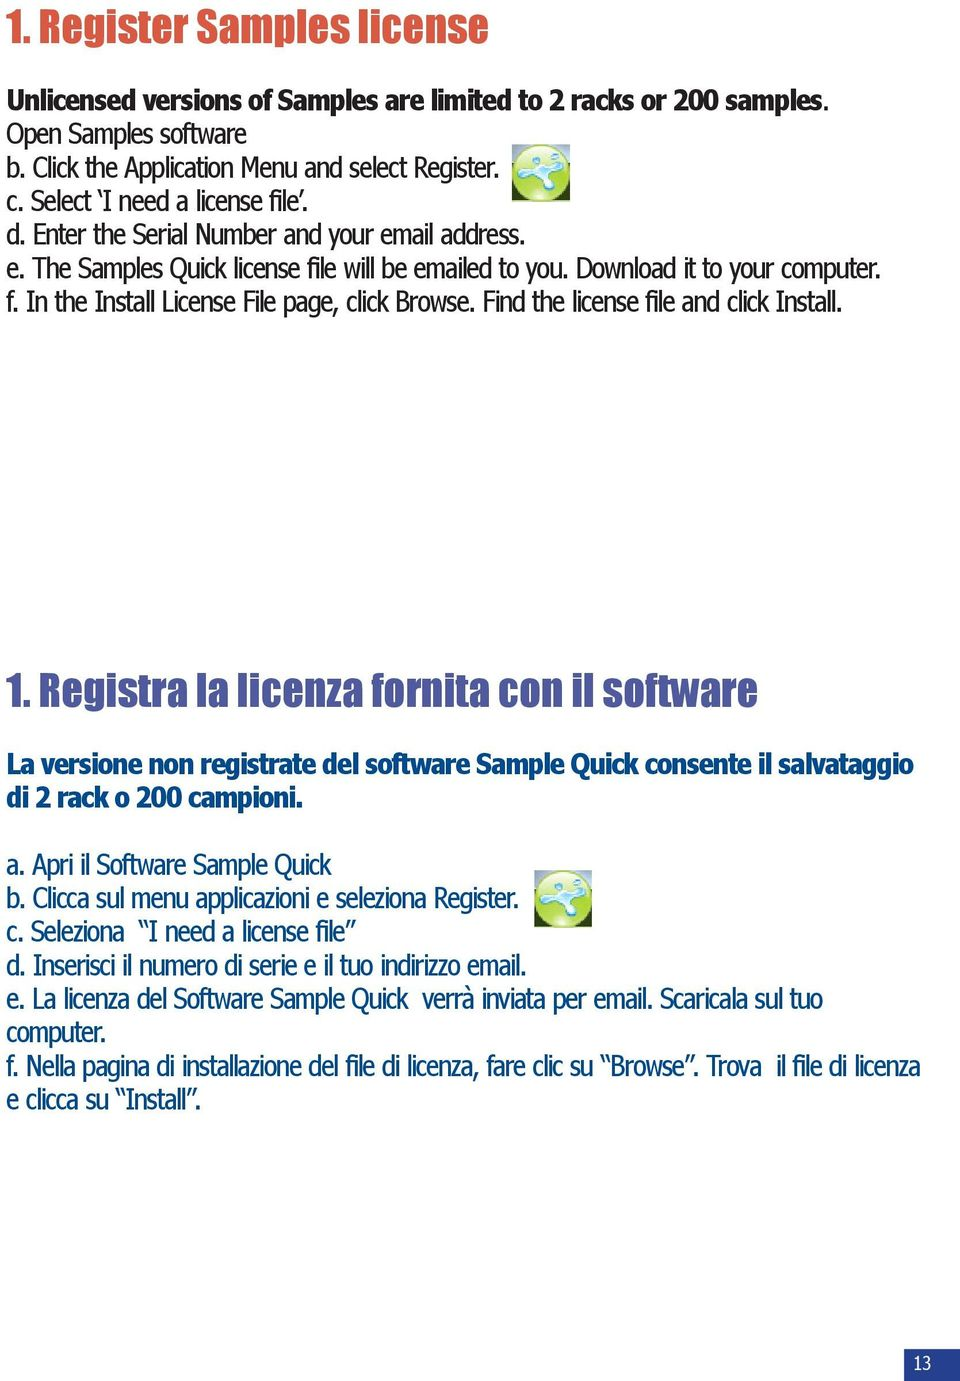 Find the license file and click Install. 1. Registra la licenza fornita con il software La versione non registrate del software Sample Quick consente il salvataggio di 2 rack o 200 campioni. a. Apri il Software Sample Quick b.